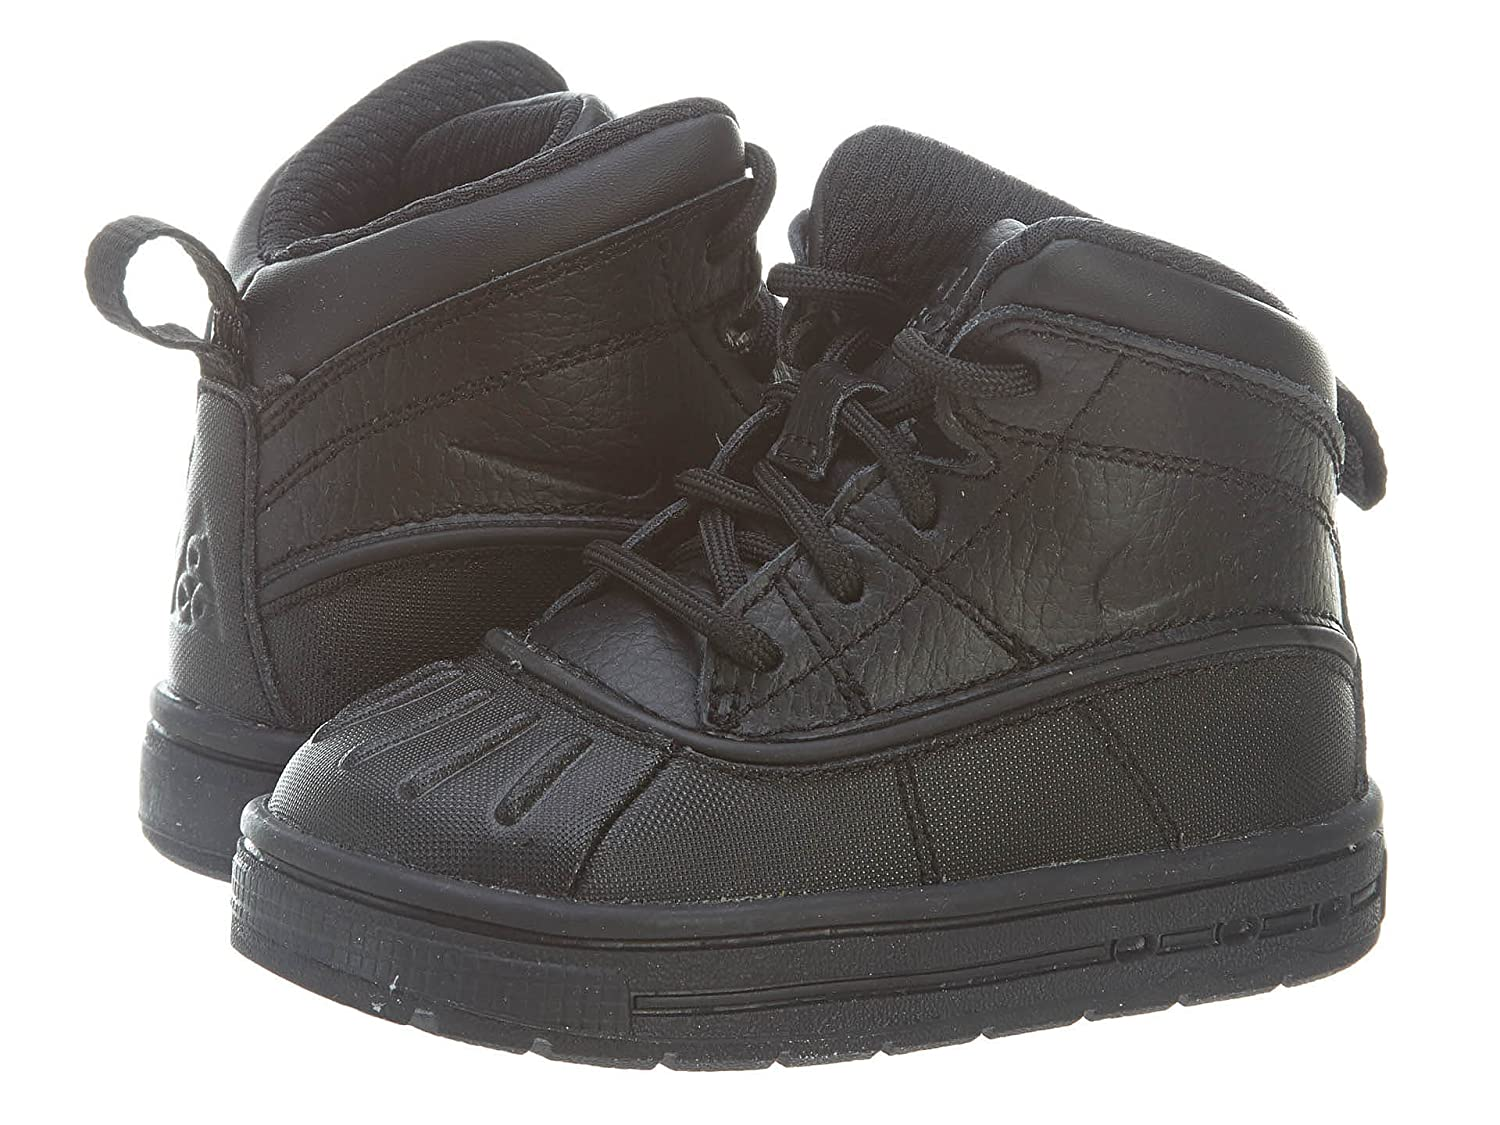 8.5 Toddlers 524874 Style NIKE Woodside 2 High 524874-001 Size Td